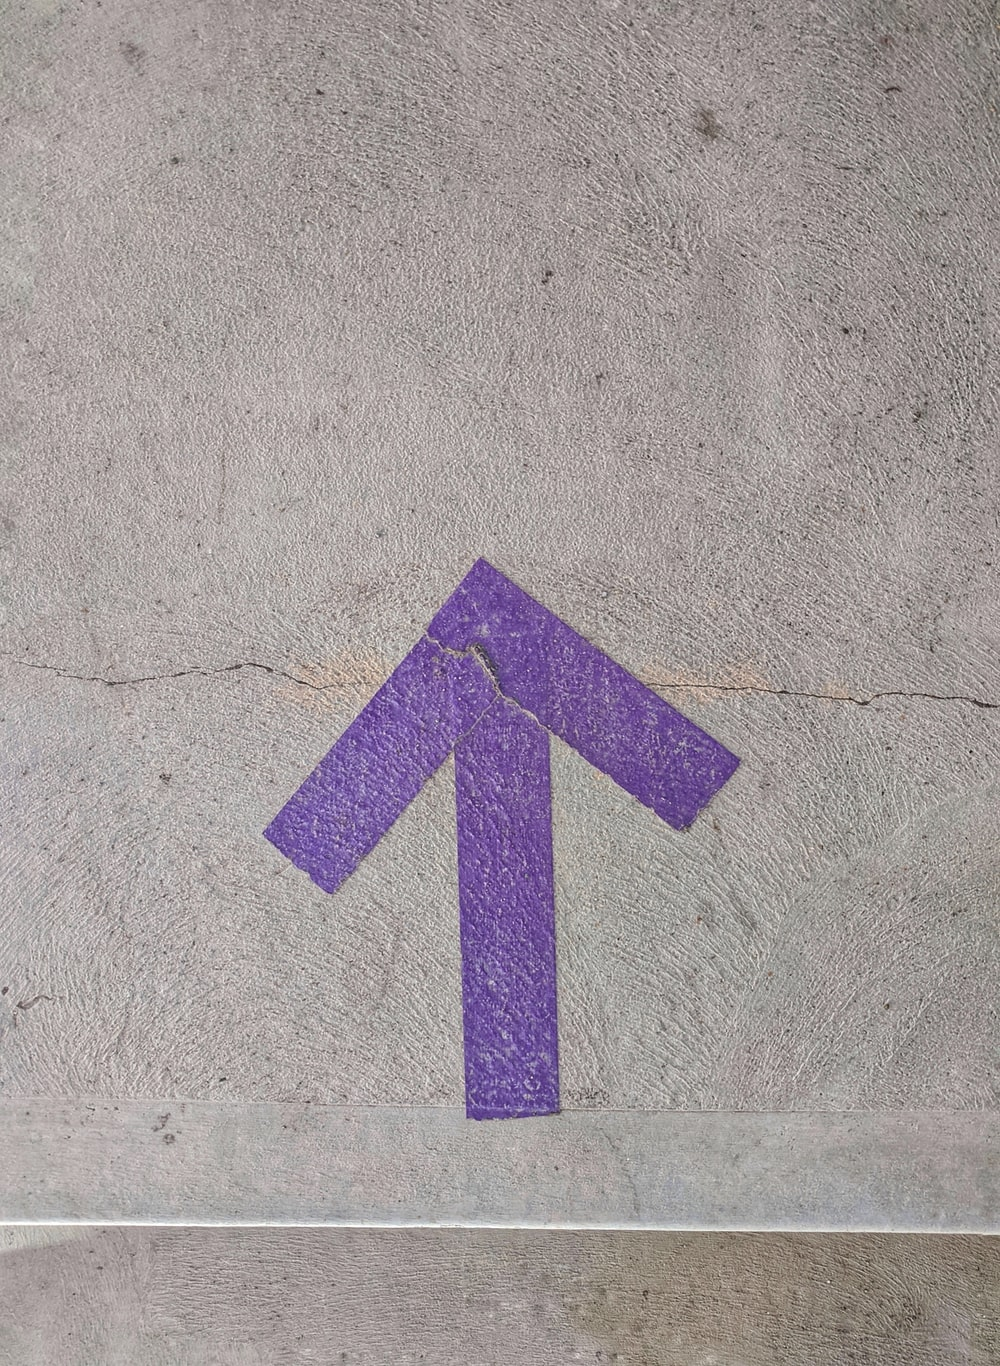 purple and white arrow sign